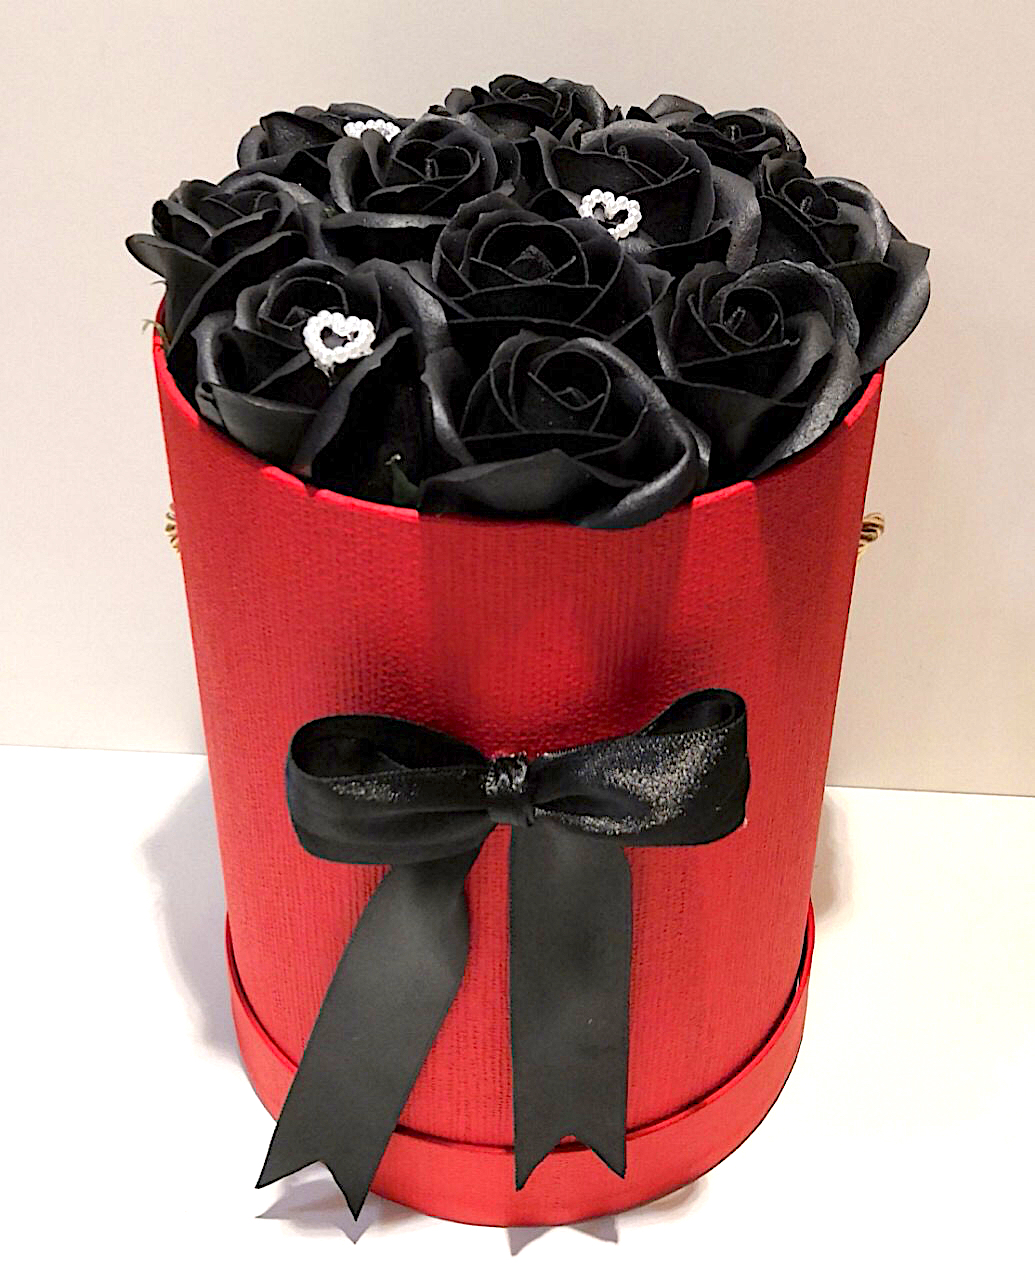 Flower Box - Black roses